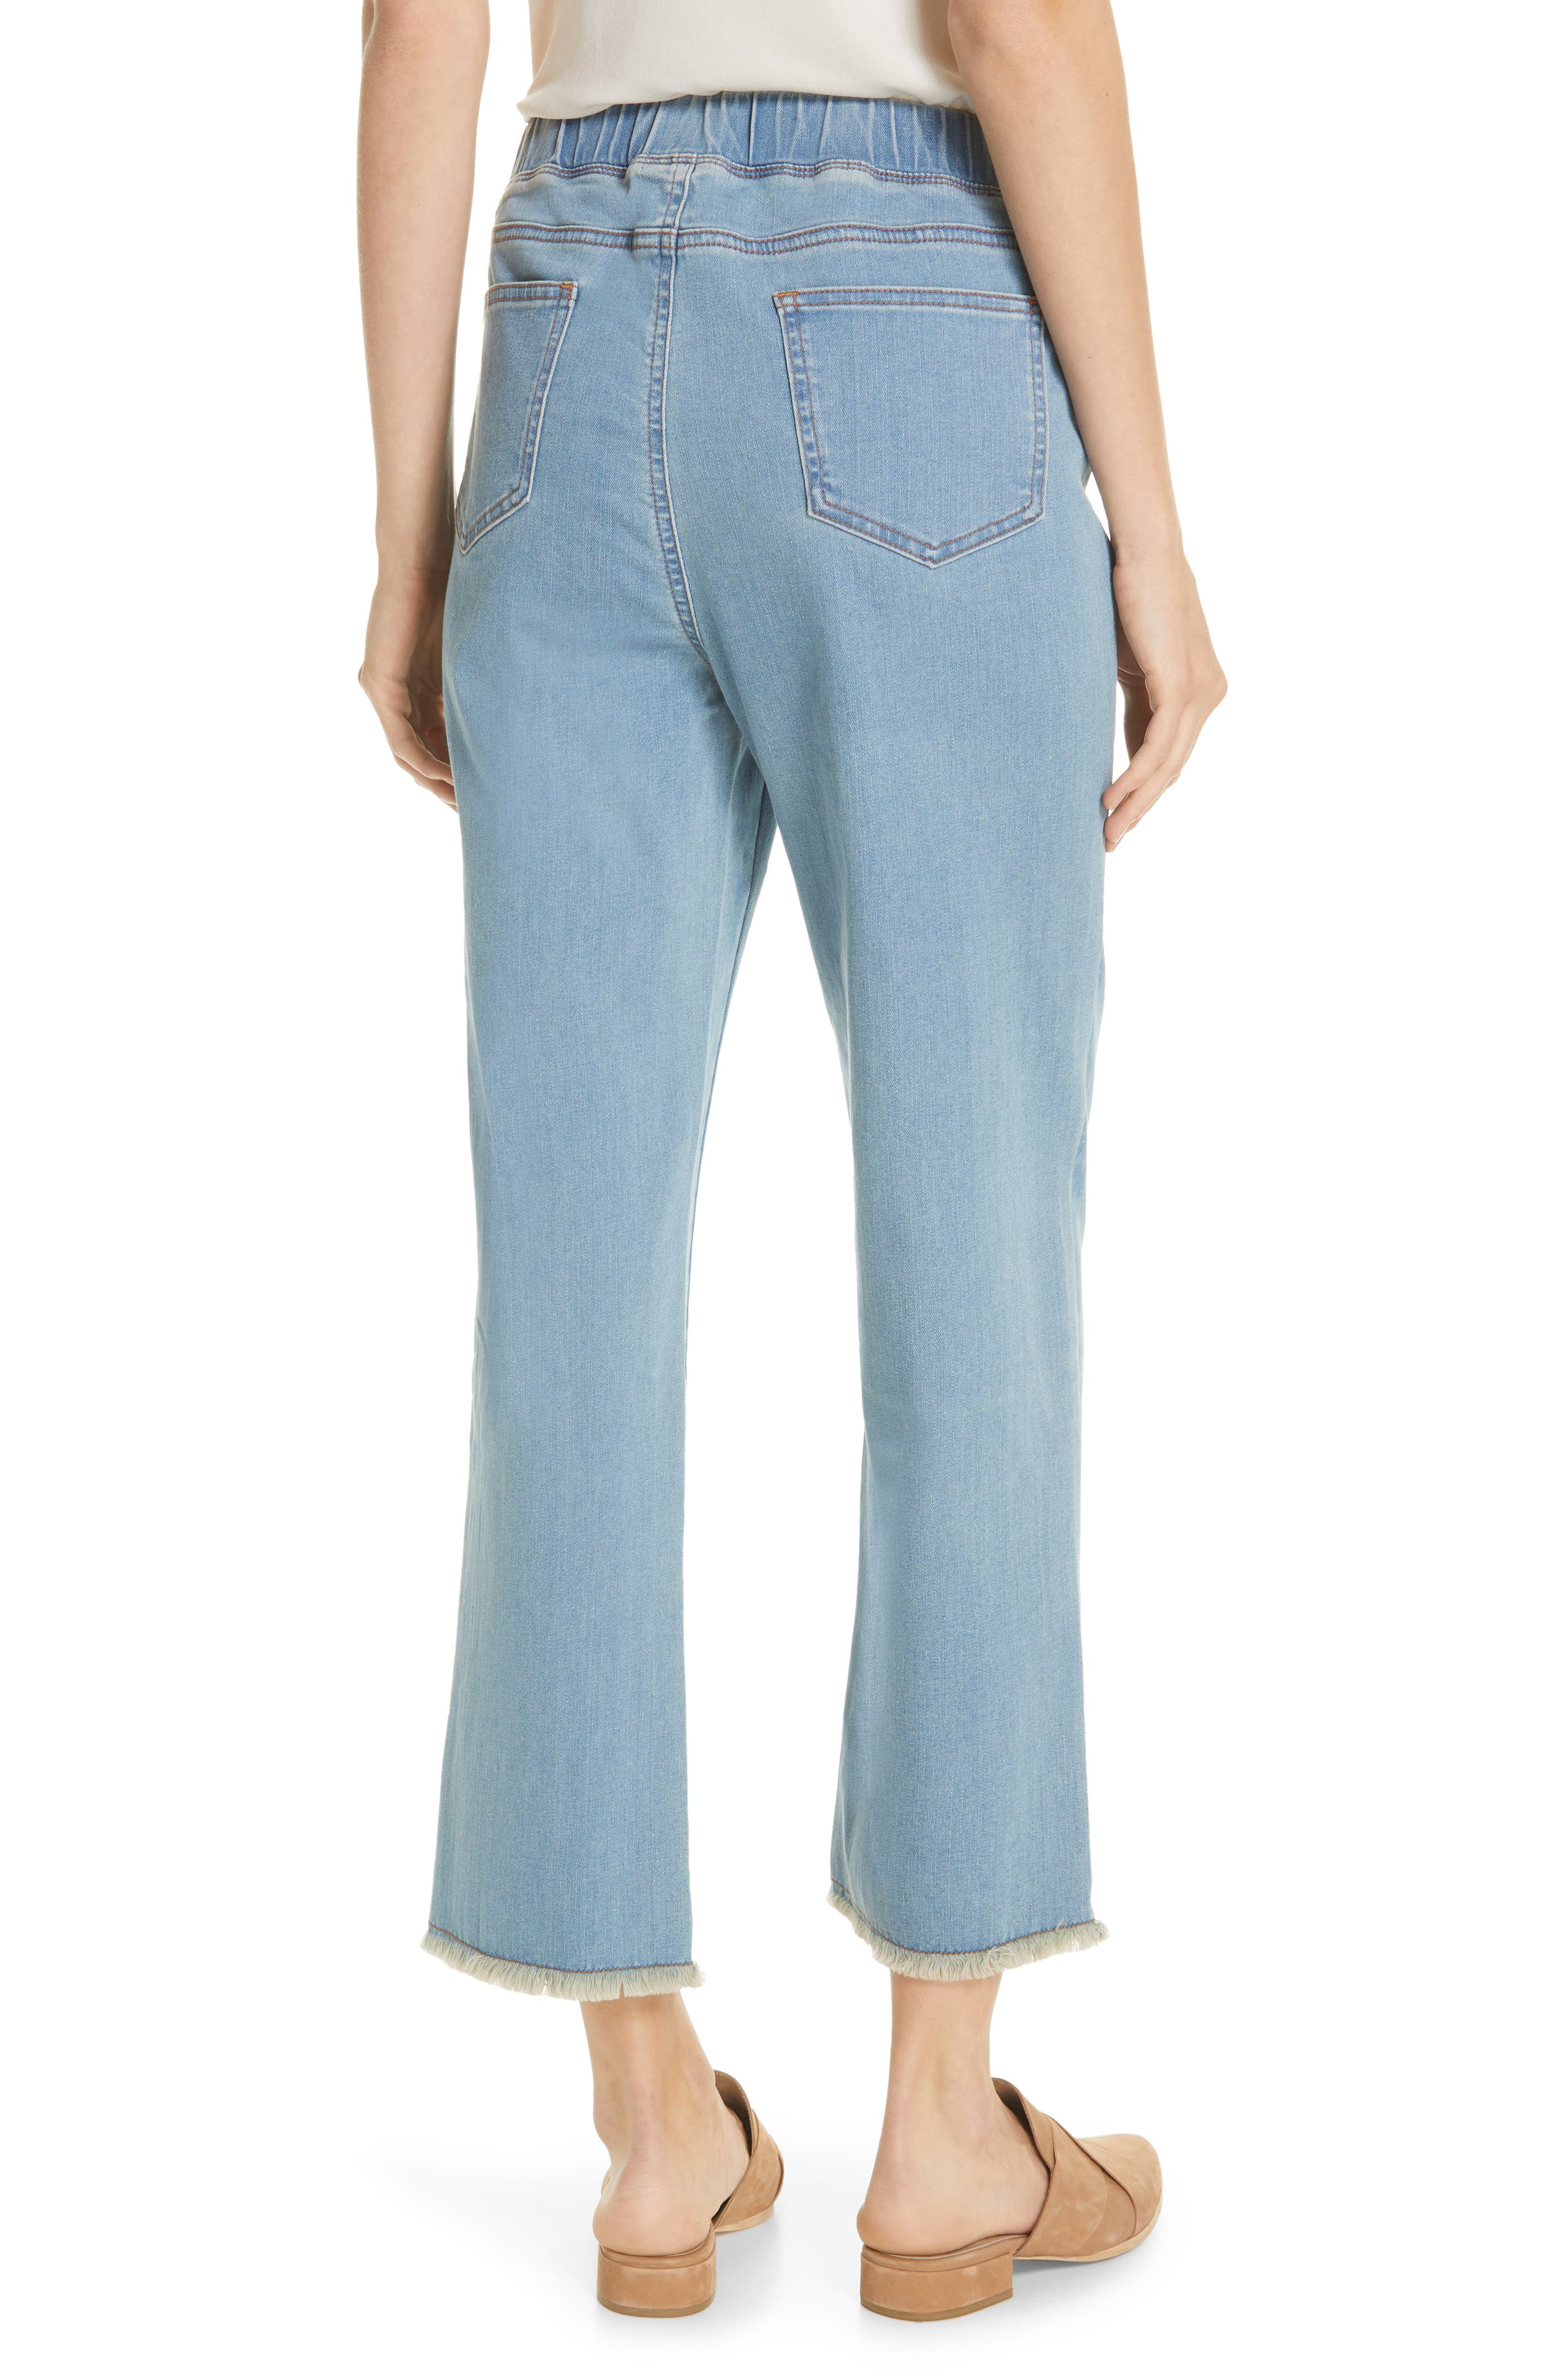 EILEEN FISHER, Frayed Hem Pull-On Ankle Jeans, Alternate thumbnail 2, color, FROST